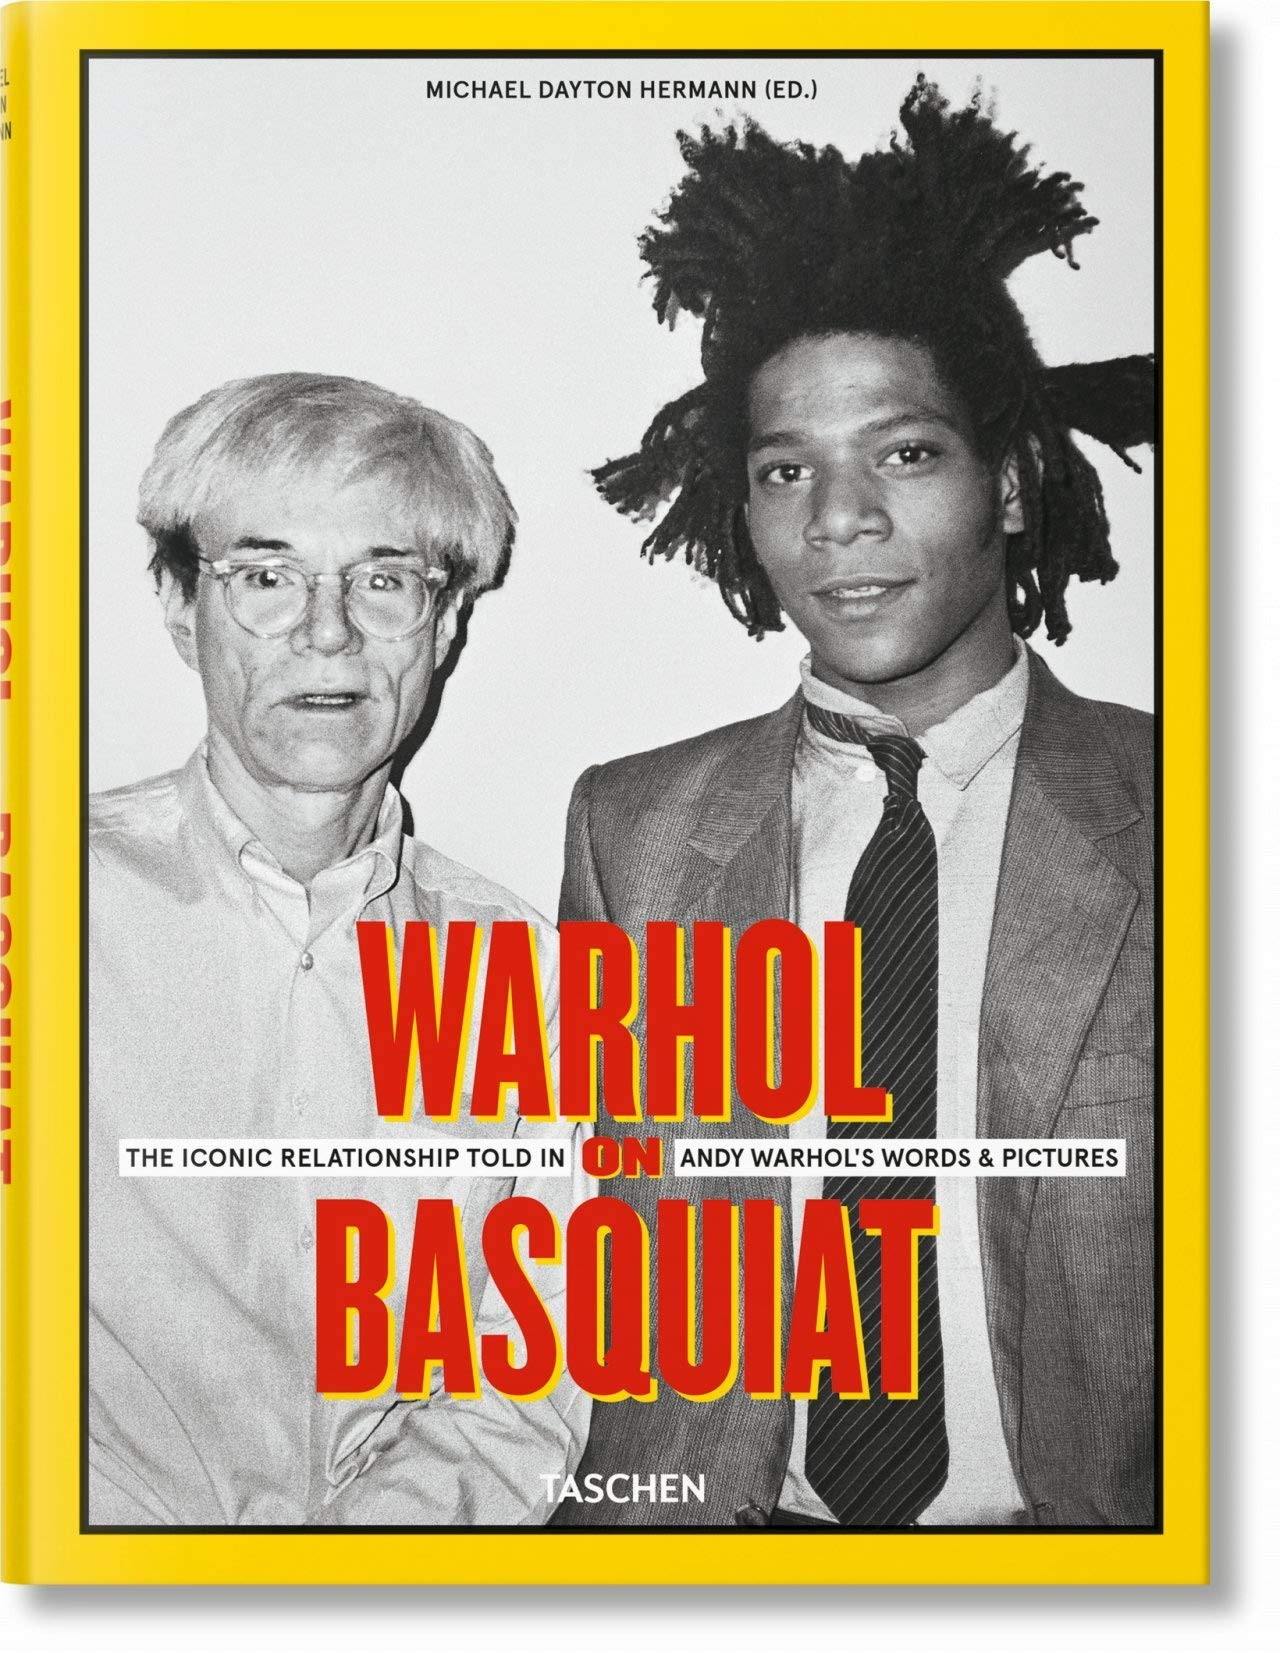 Taschen | Warhol on Basquiat: The Iconic Relationship Told in Andy Warhol's  Words and Pictures | Michael Dayton Hermann, Reuel Golden